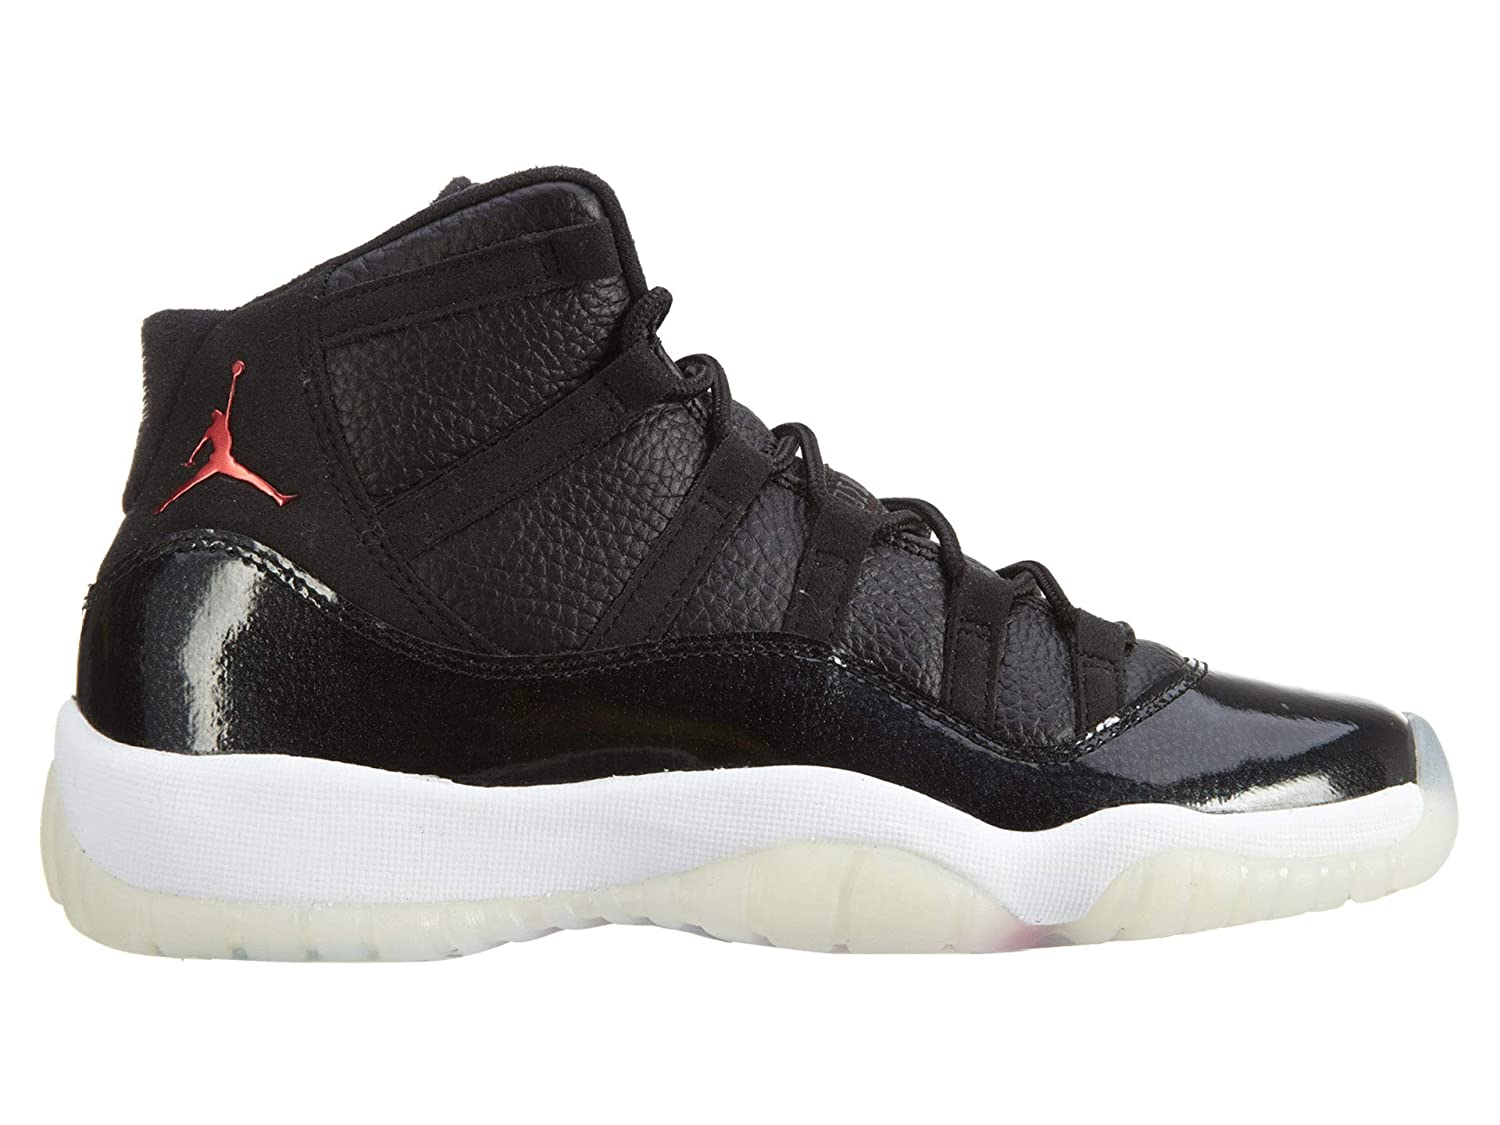 wholesale dealer 33dec 739f5 Amazon.com   Air Jordan 11 Retro BG - 378038 002   Basketball